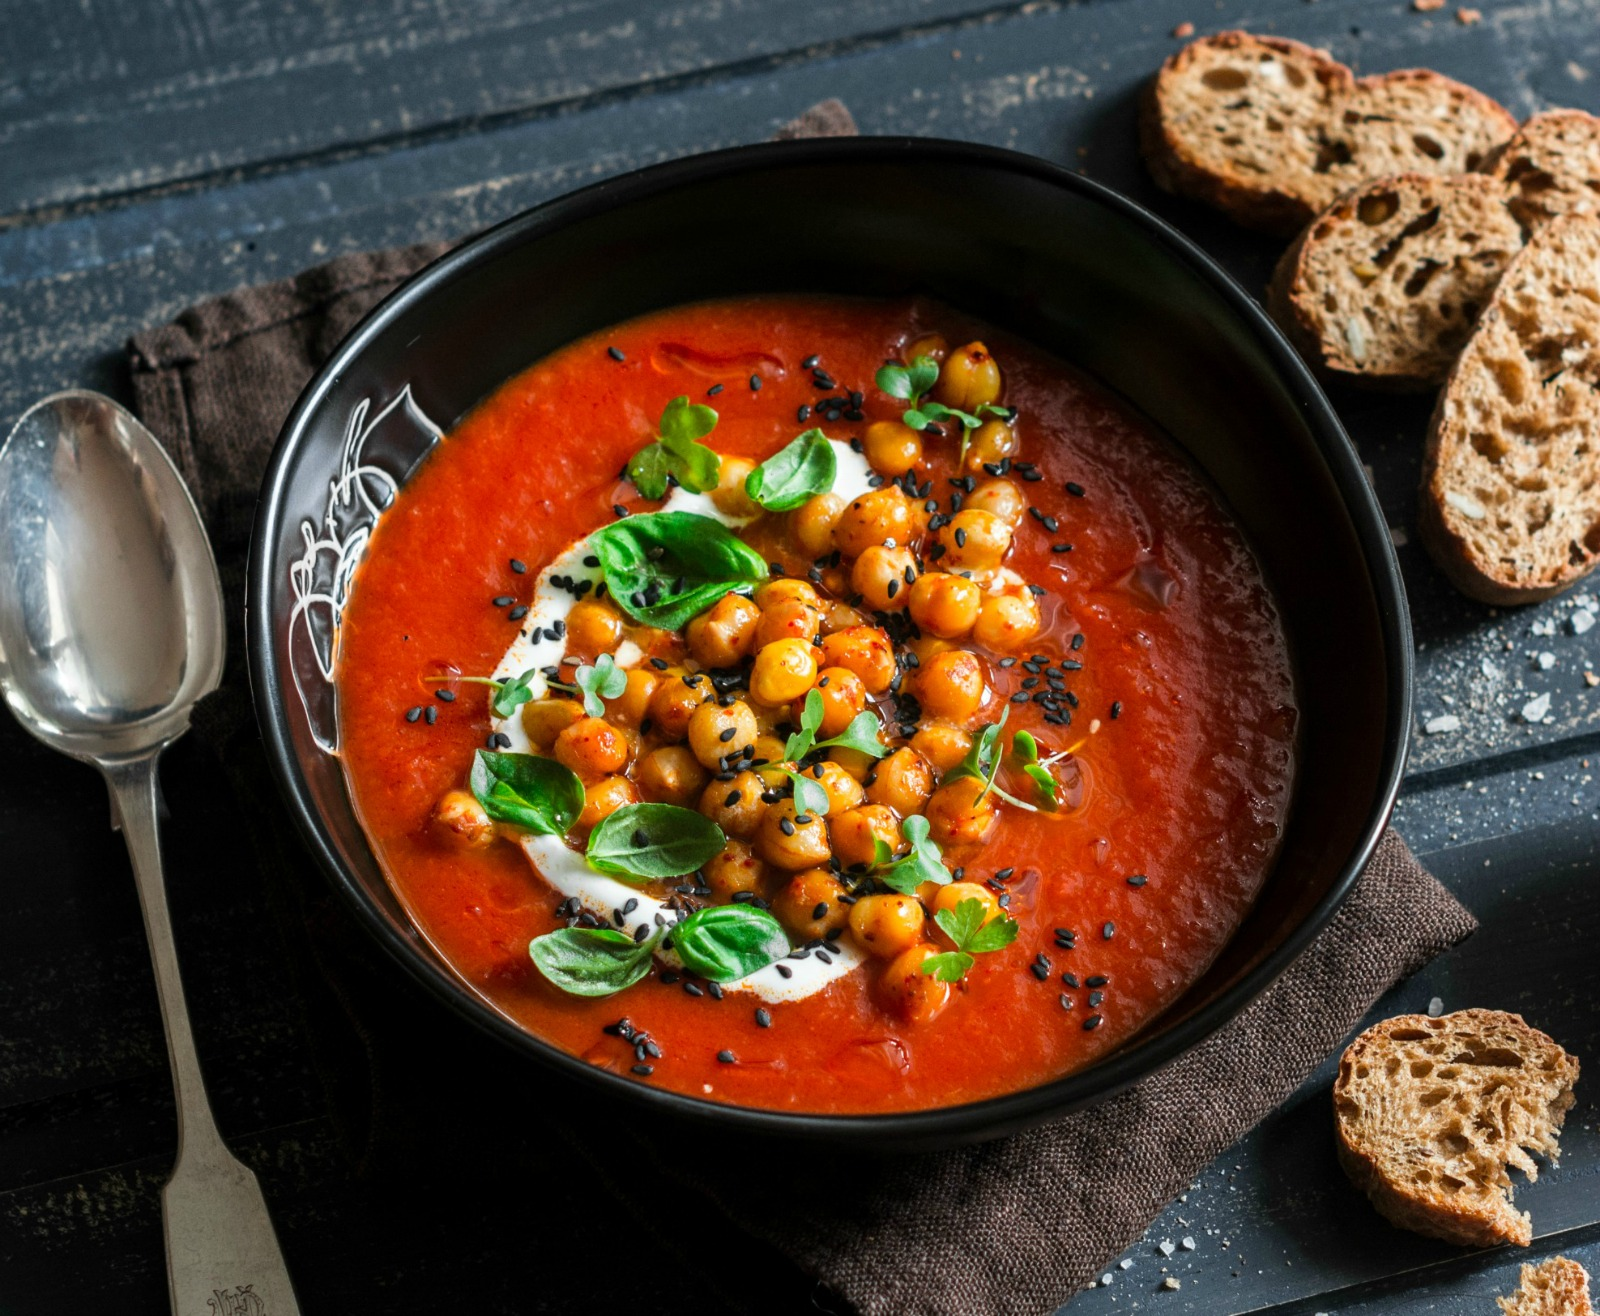 Hands down, this delicious vegan tomato soup made with fire roasted tomatoes and topped with roasted chickpeas is the best tomato soup you'll ever have. (#vegan) ordinaryvegan.net